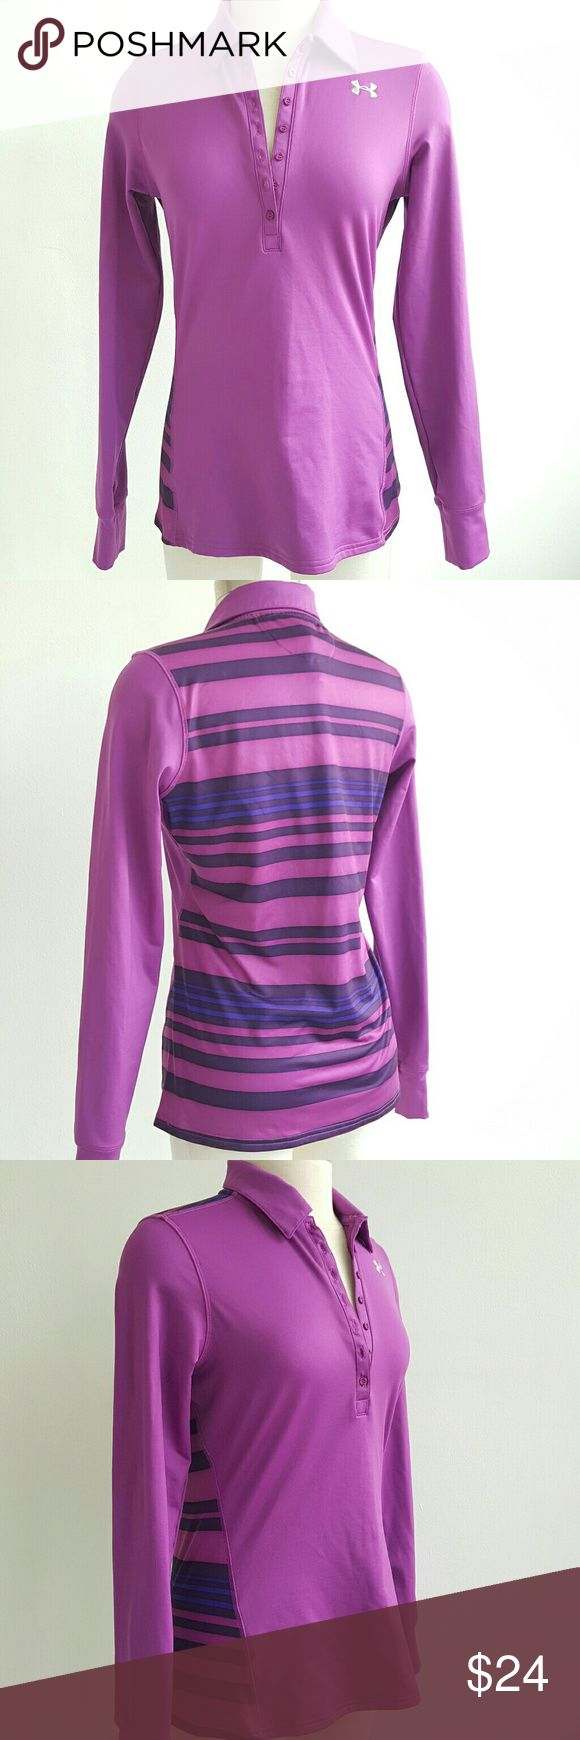 Under Armour Purple Long Sleeve Top Gentle used and perfect for any sport activities,  purple top with strappy pattern on the back . Excellent condition Under Armour Tops Tees - Long Sleeve